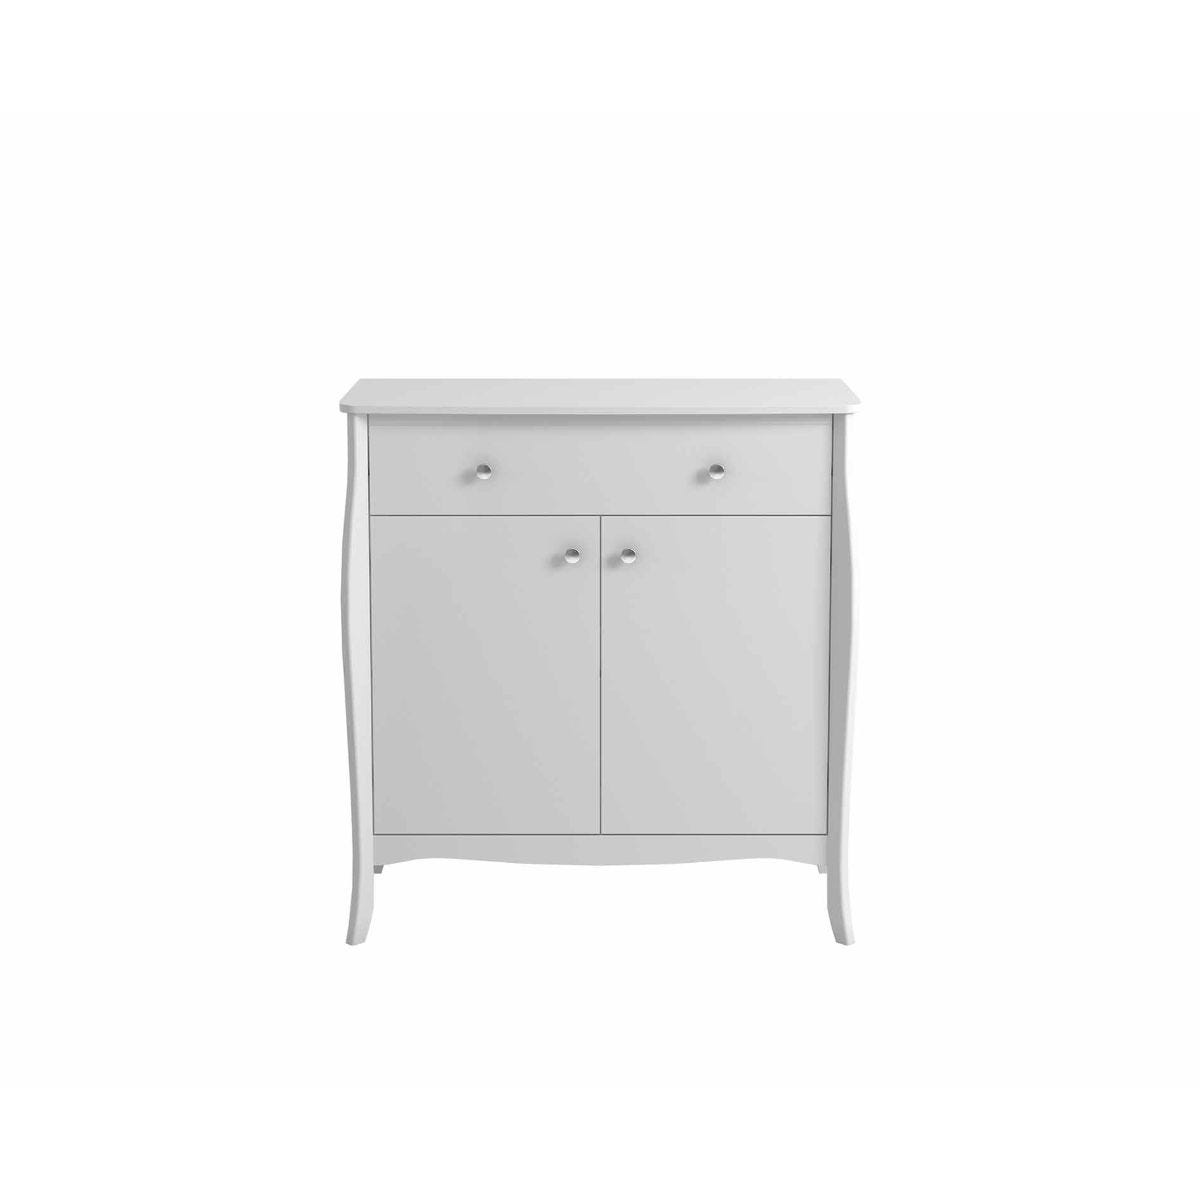 Steens Baroque Sideboard Small, White